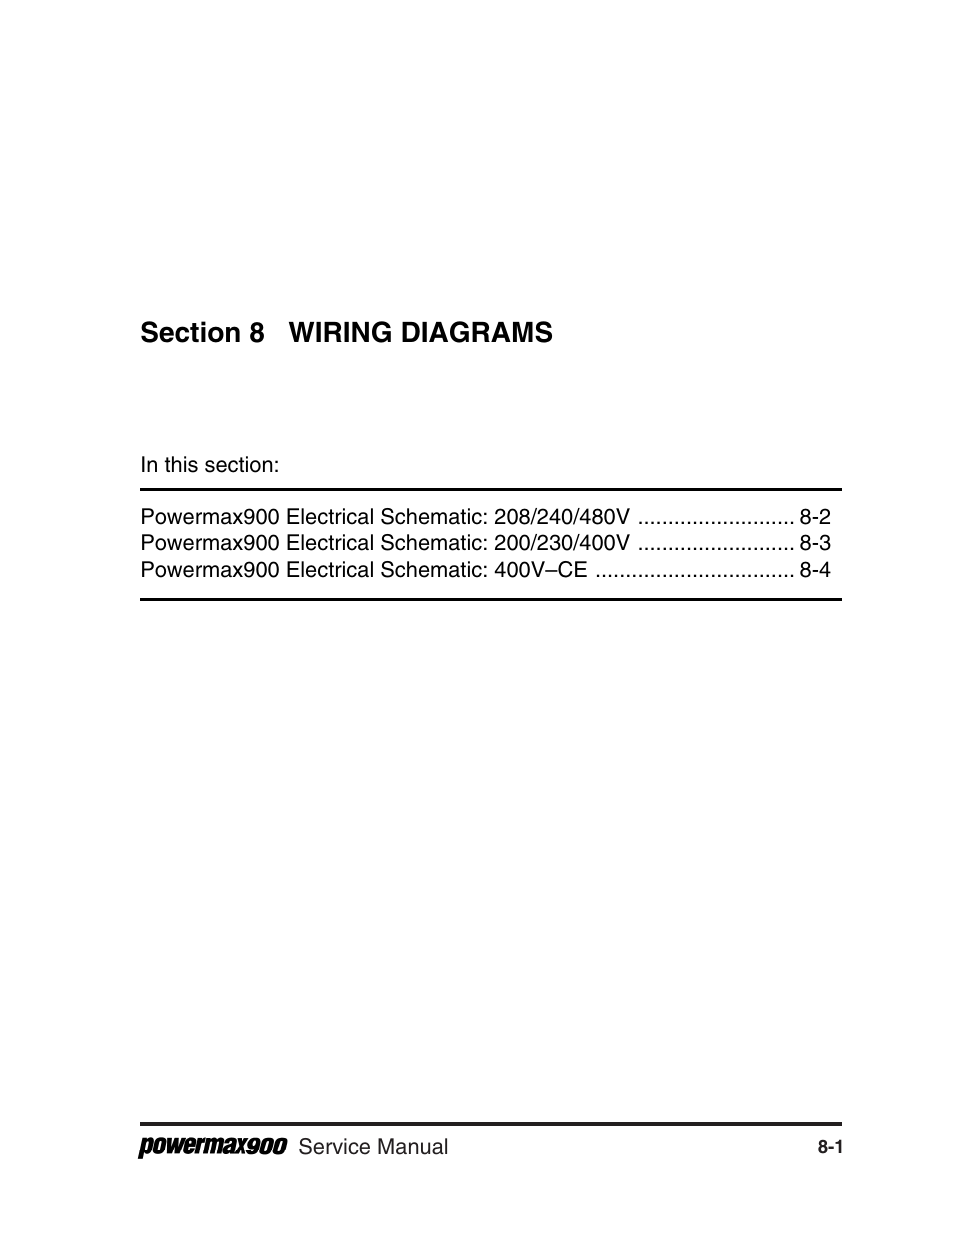 Section 8 Wiring Diagrams